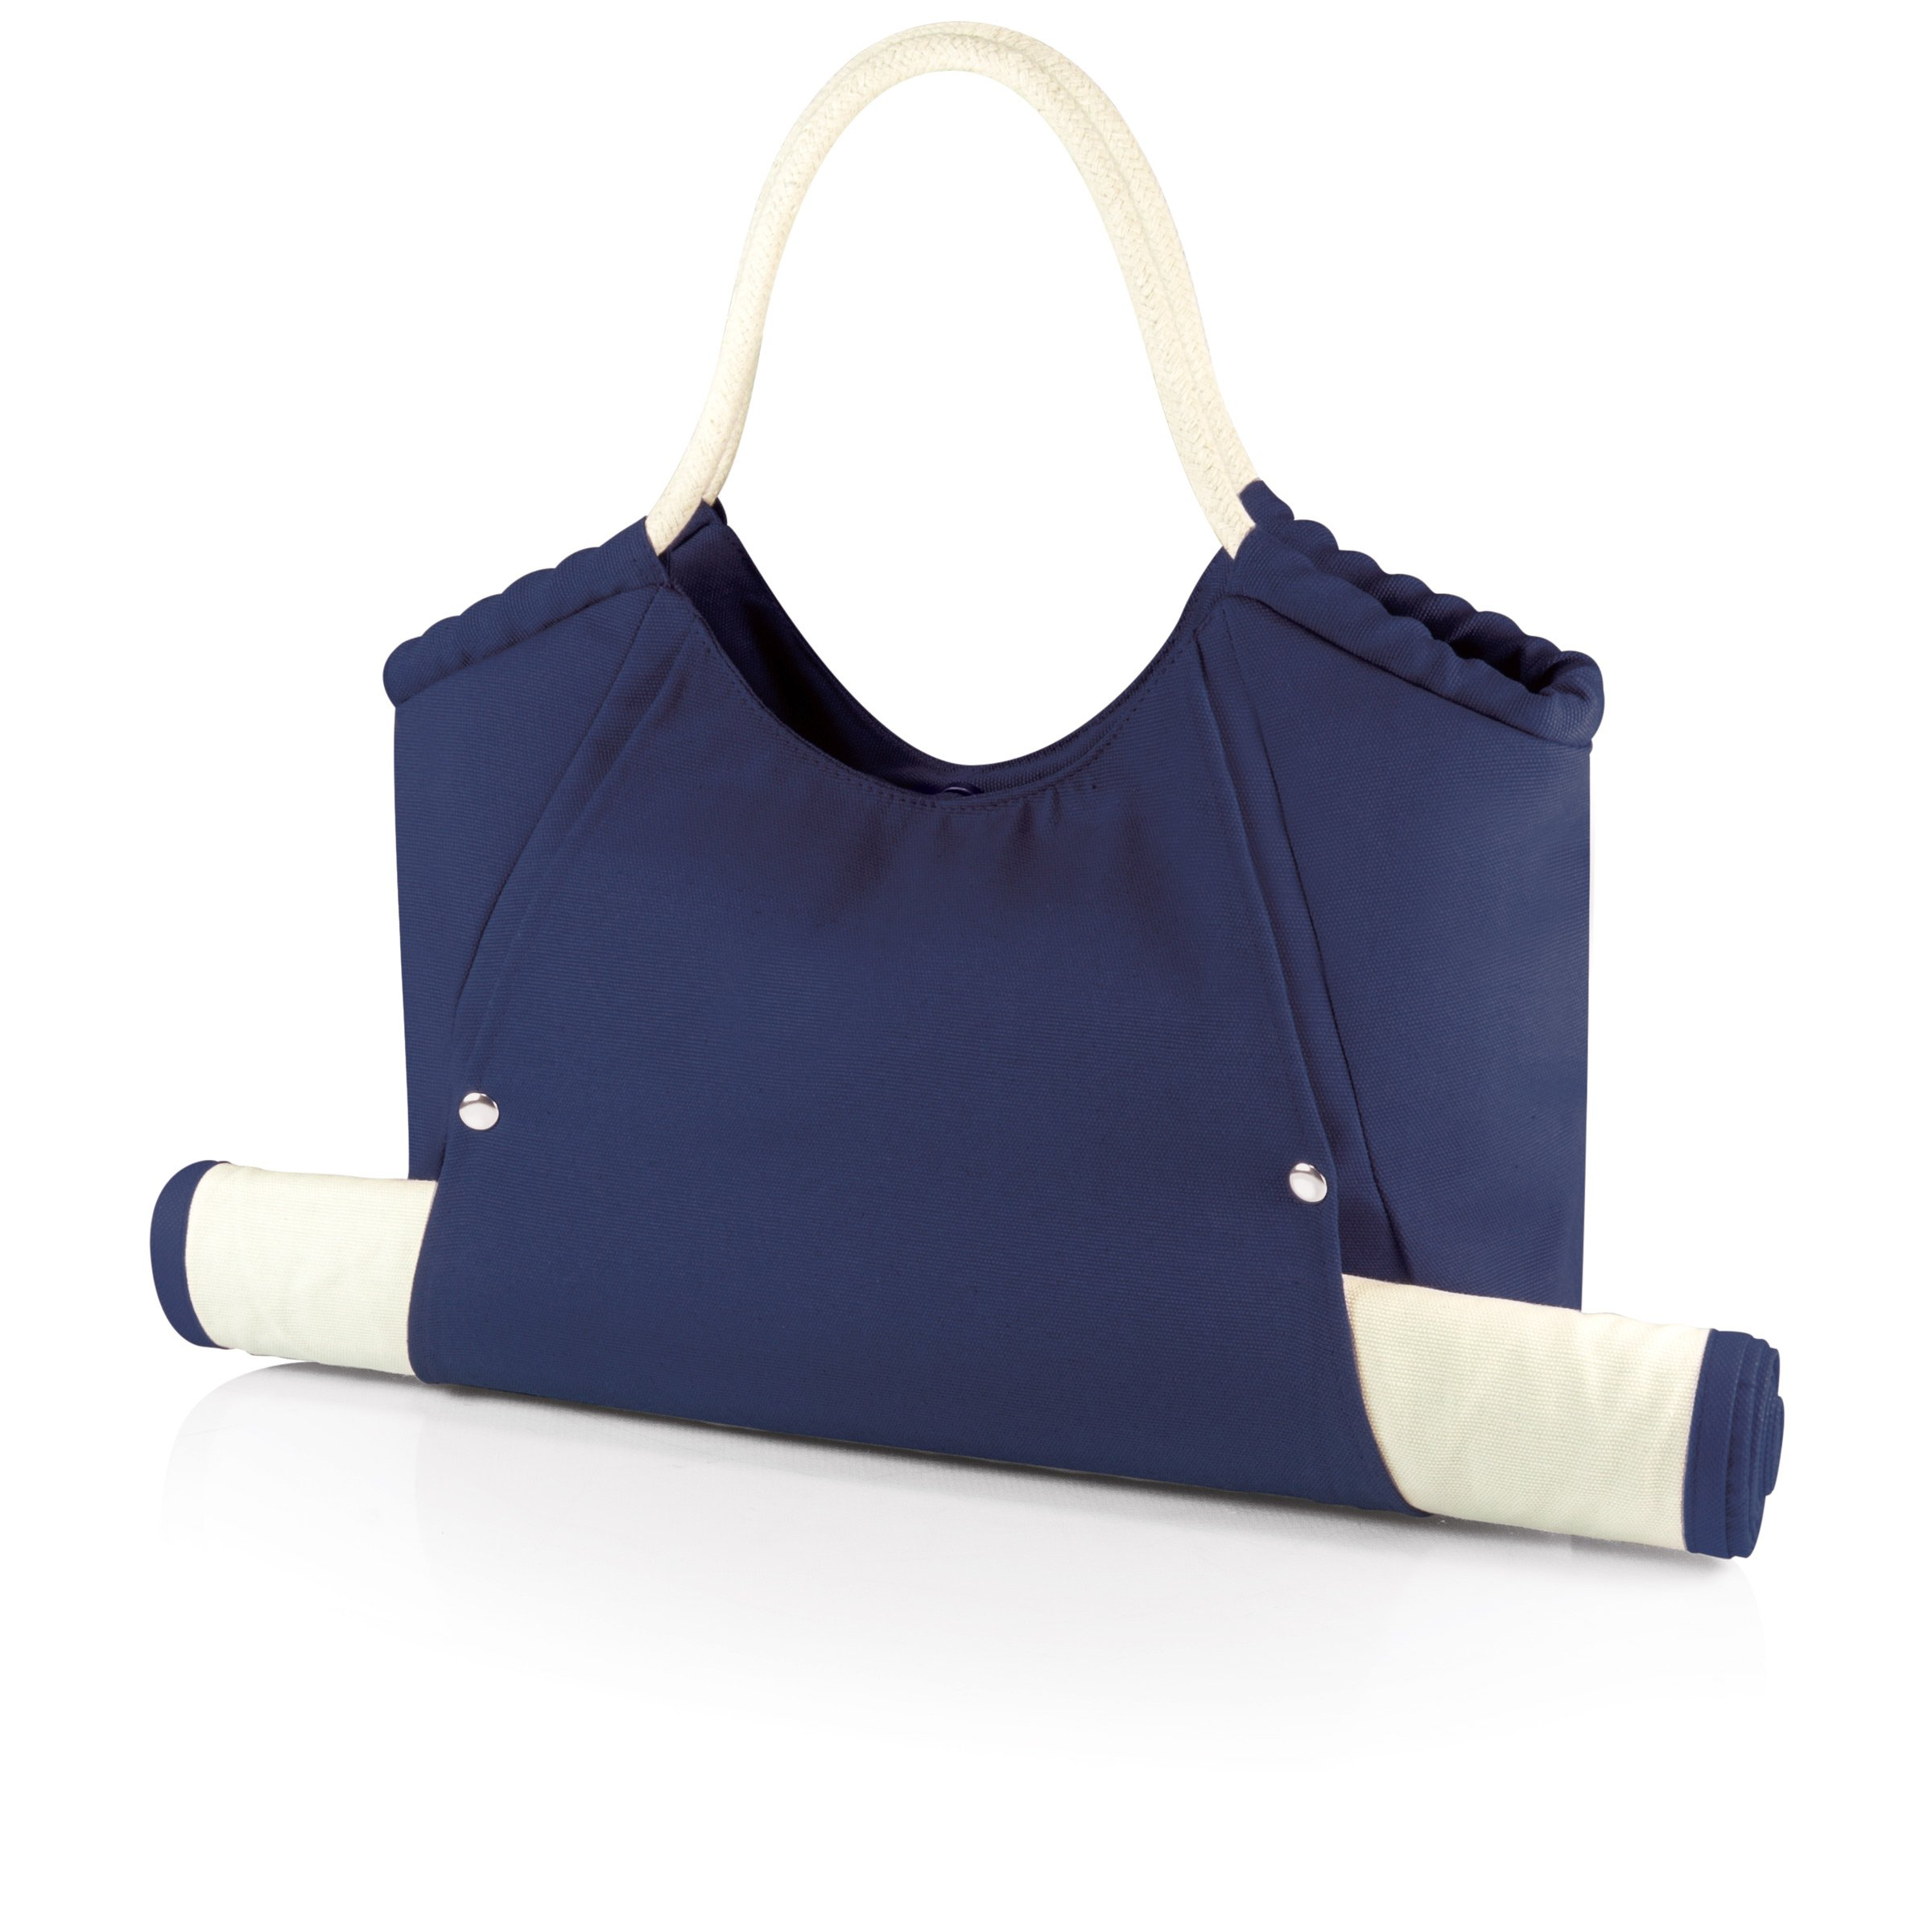 ONIVA - a Picnic Time Brand Cabo Beach Tote with Mat, Navy by ONIVA - a Picnic Time brand